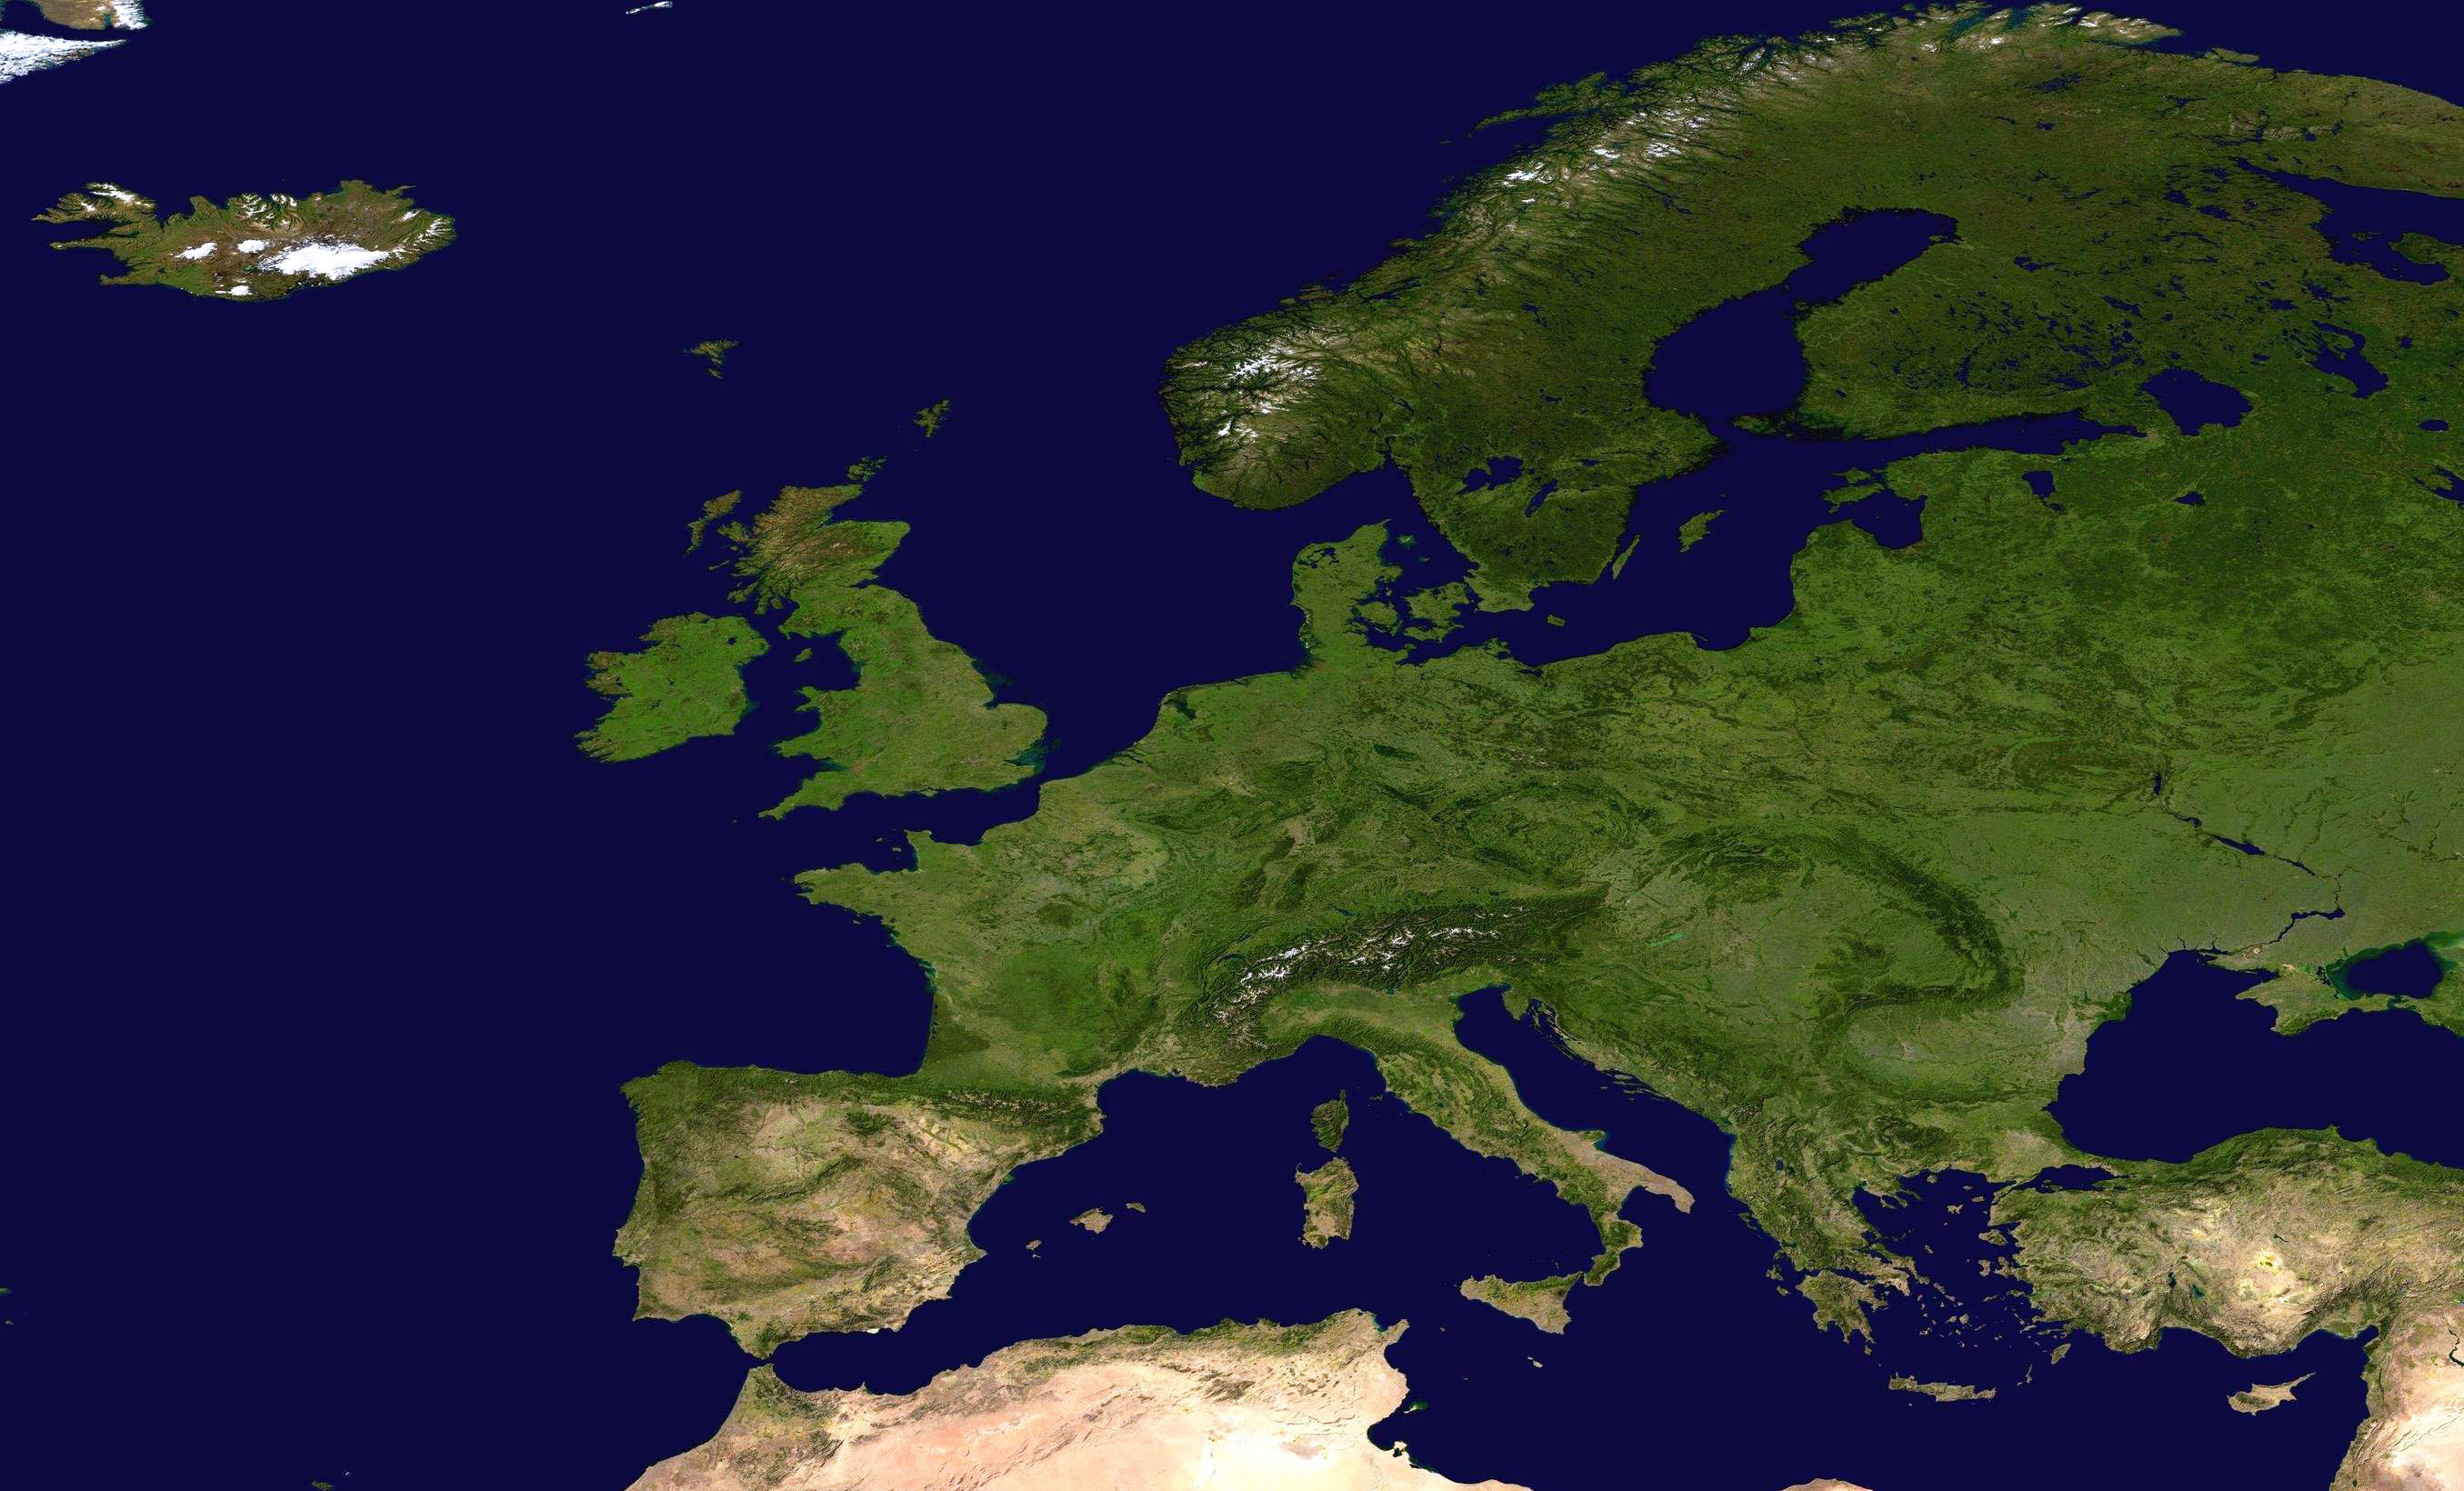 Large detailed satellite map of Europe | Europe | Mapsland ... on world maps, political maps, topographical maps, topographic maps, space maps, aerial photographs, driving directions, sites atlas thematic maps, types of maps, earth maps, aerial maps, pomorskie poland maps, digital maps, internet maps, lake maps, wall maps, google maps, topo maps, historical maps, live maps, radar maps, temperature maps, state maps, military maps, msn maps, weather maps, street maps, gis maps, physical maps, thematic maps, dvd maps, city maps, road maps,